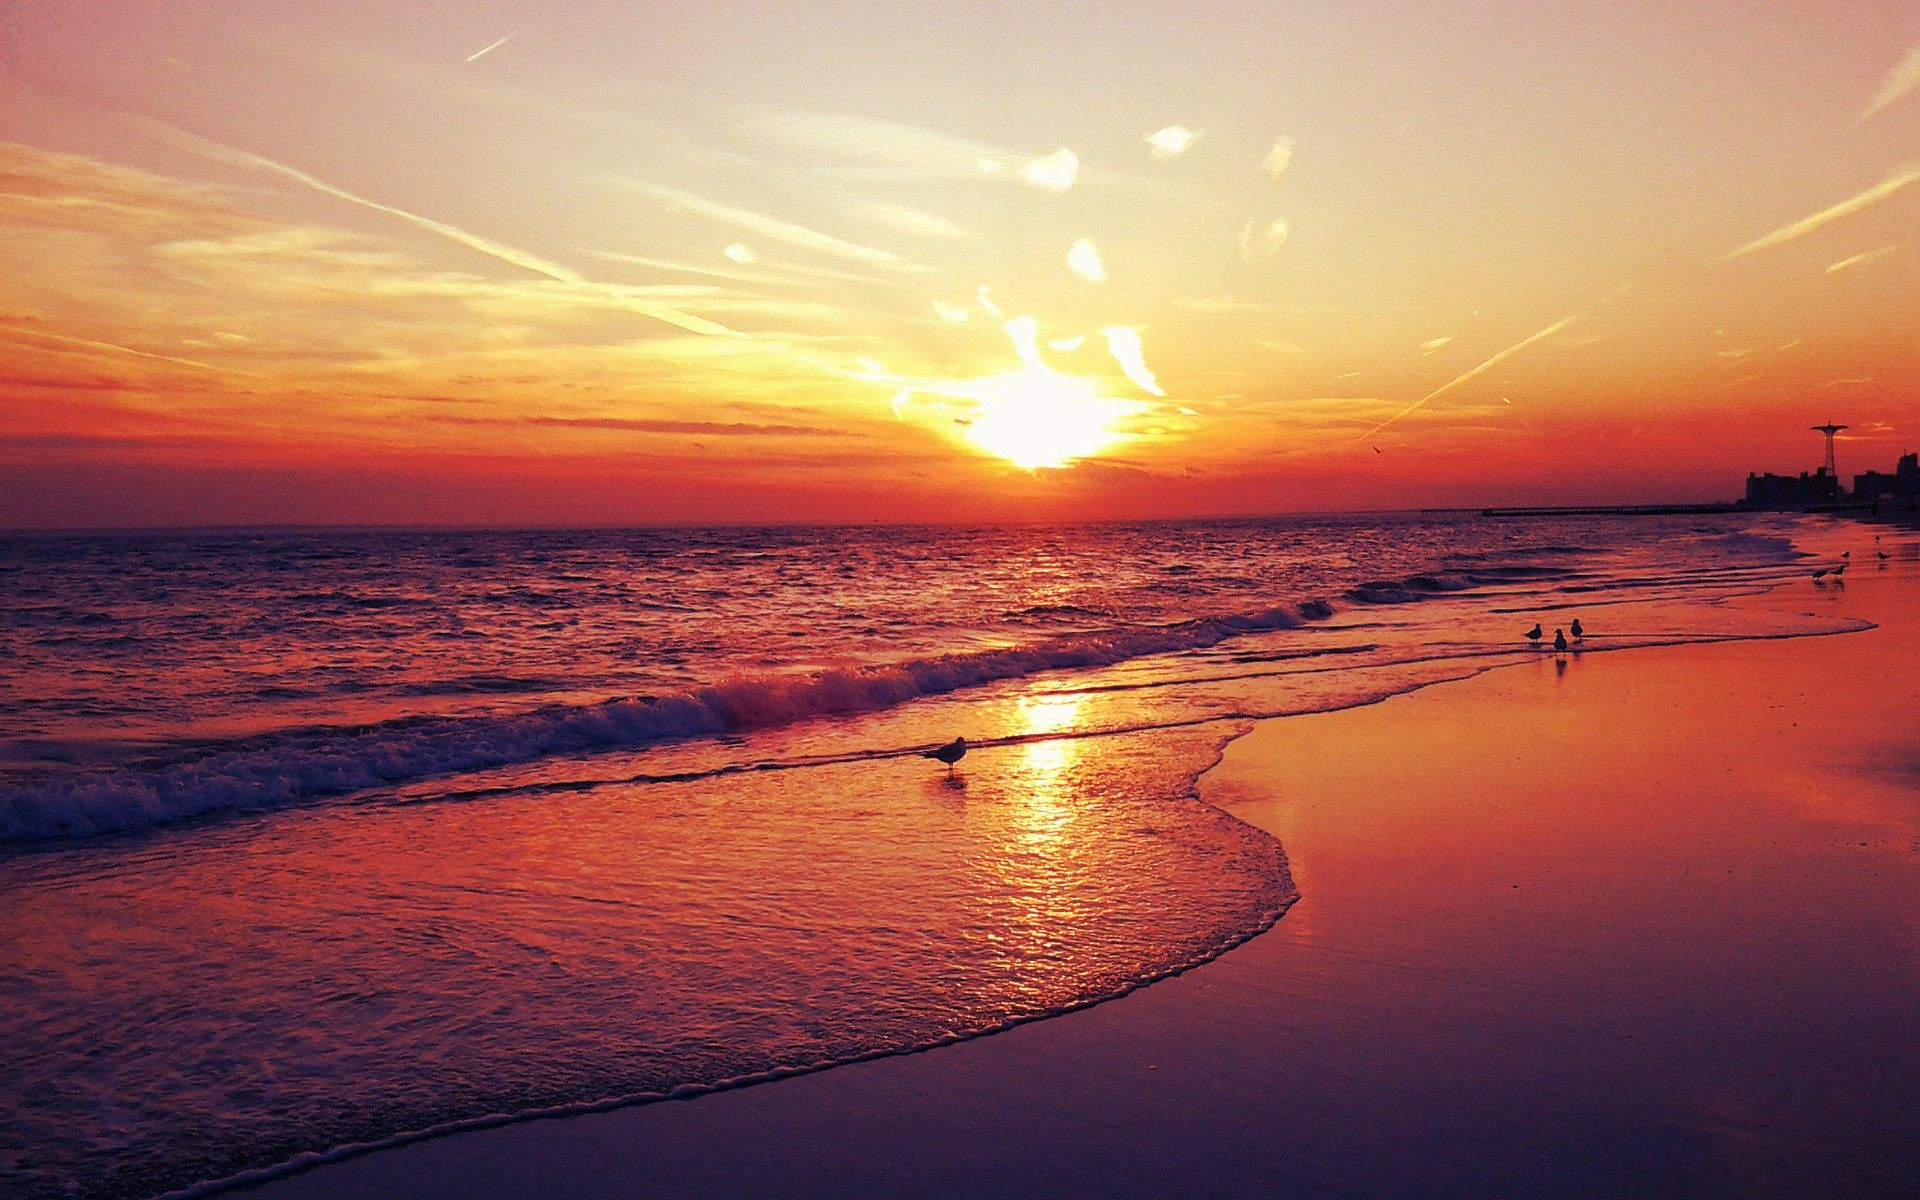 hq wallpapers plus provides different size of beach sunset wallpapers for iphone you can easily